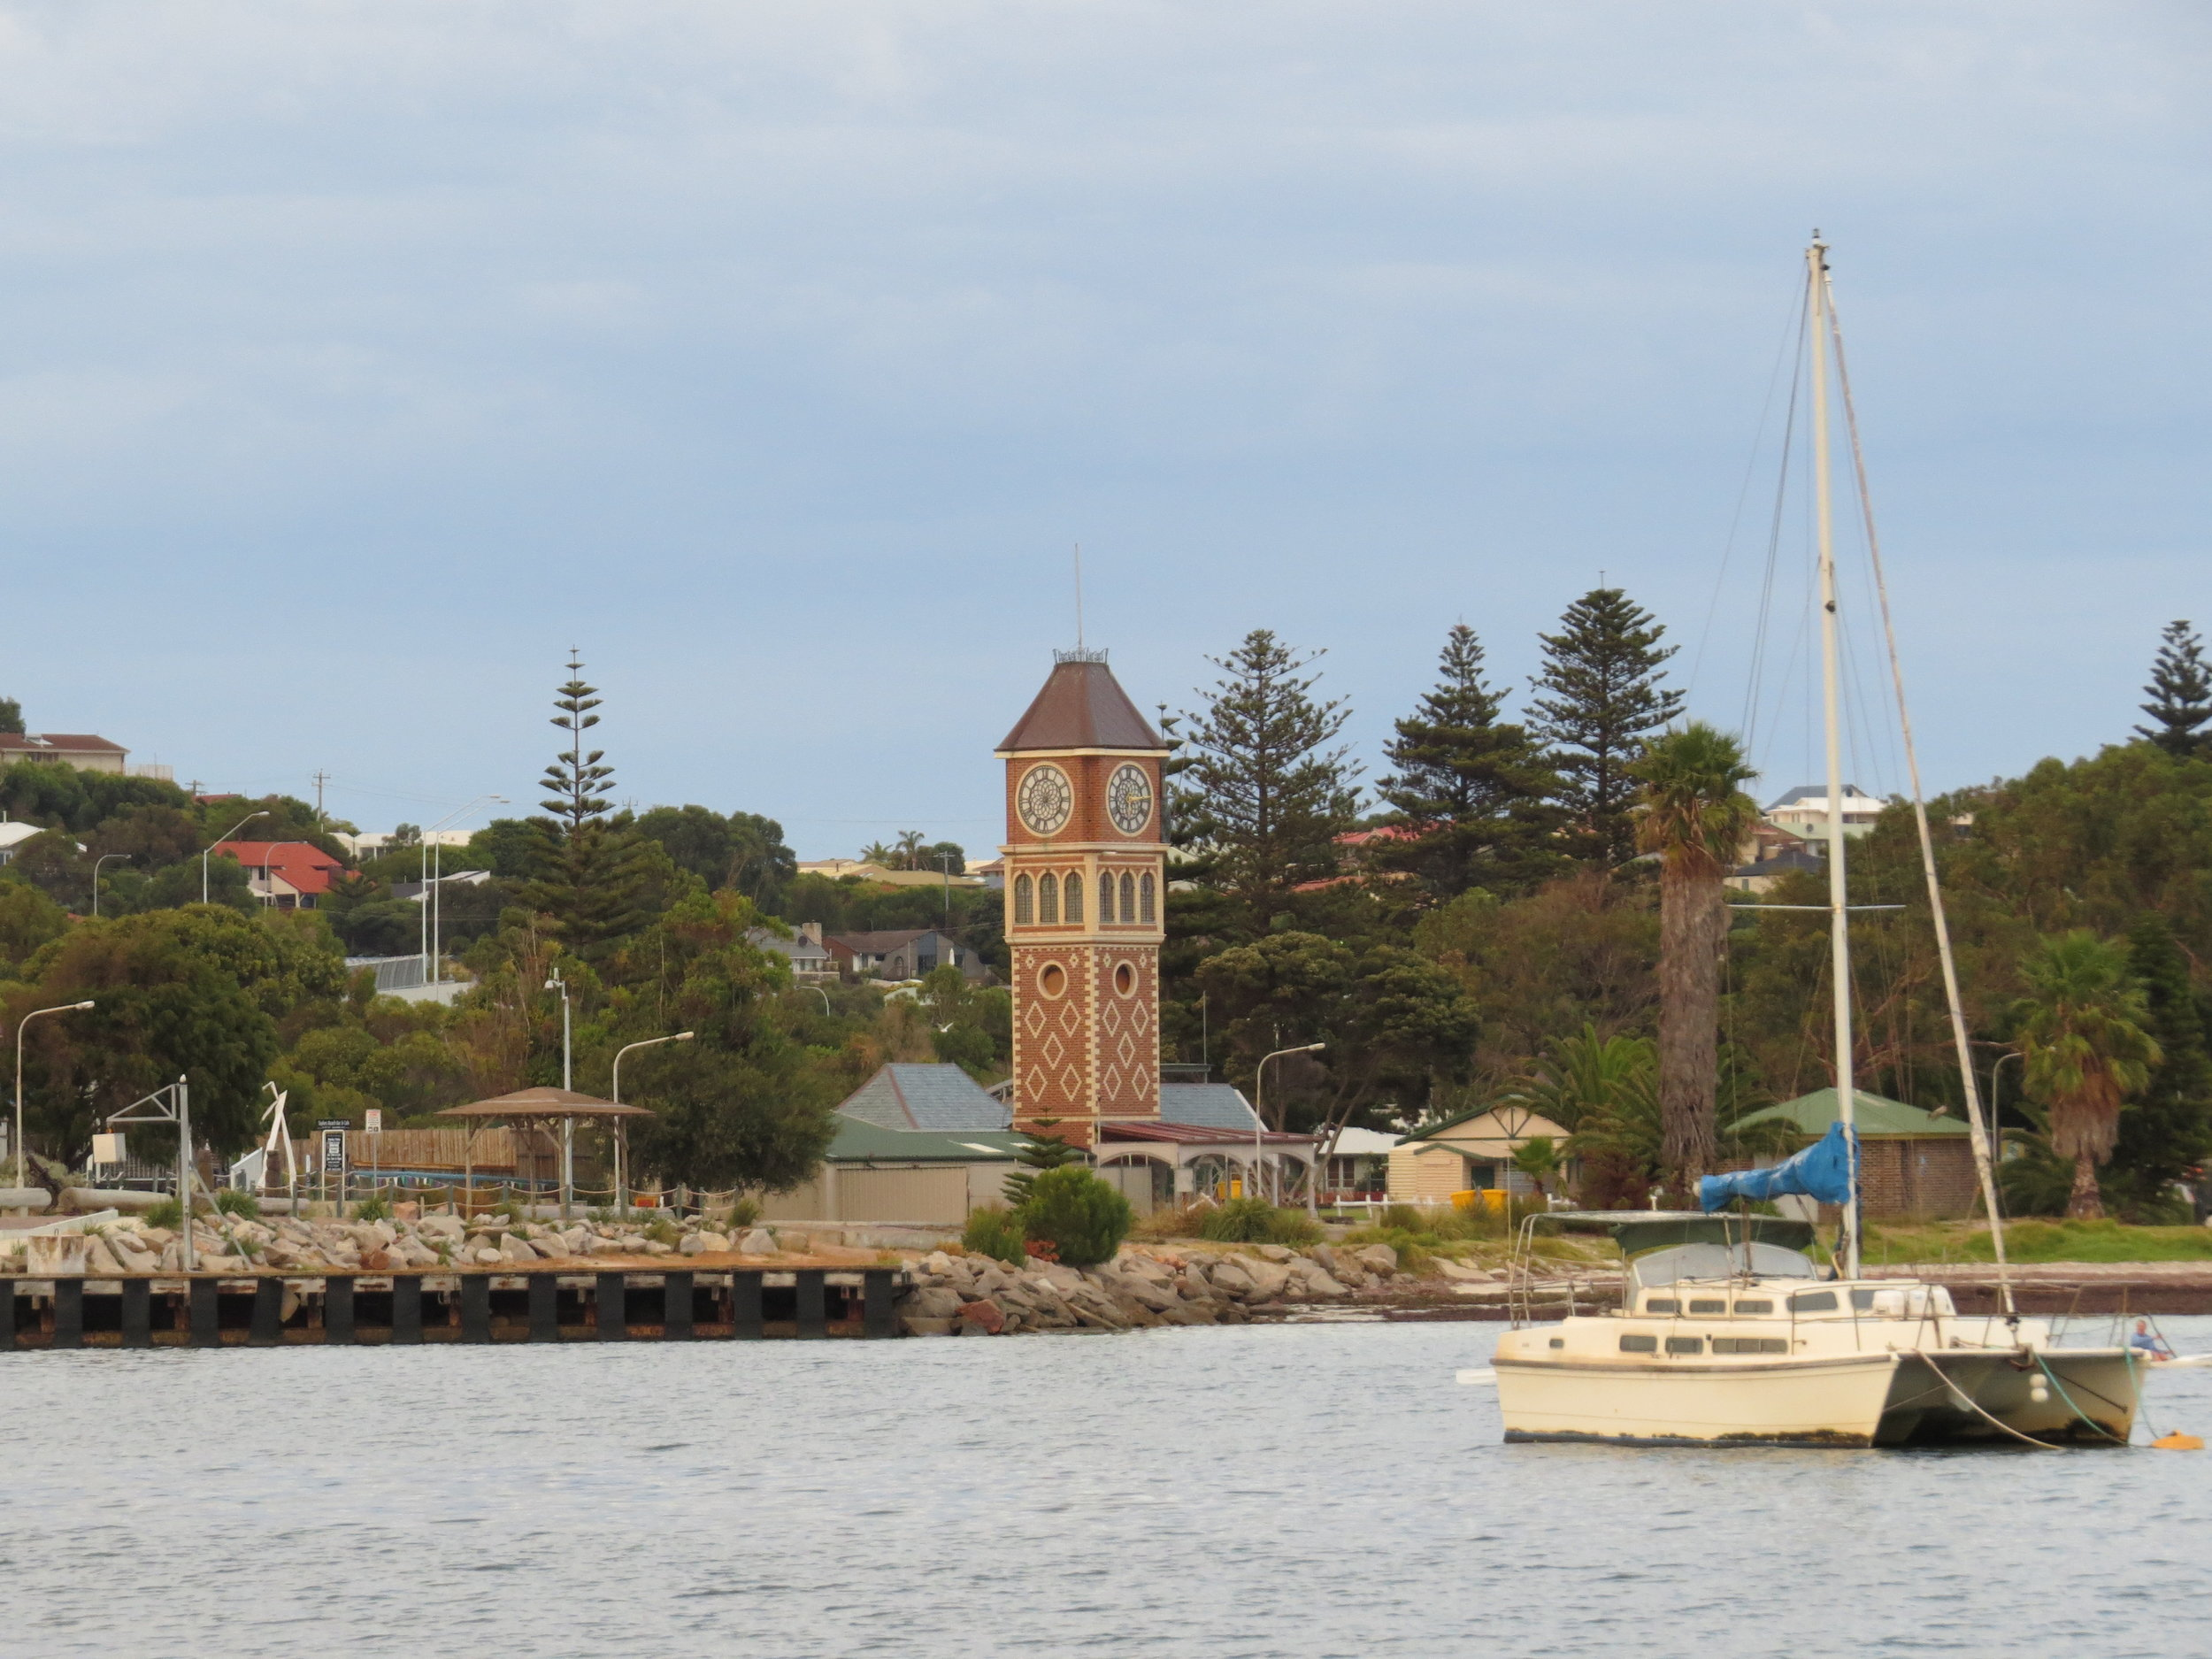 Esperance was a warm & welcoming town. Above, a view of the anchorage and town clock.